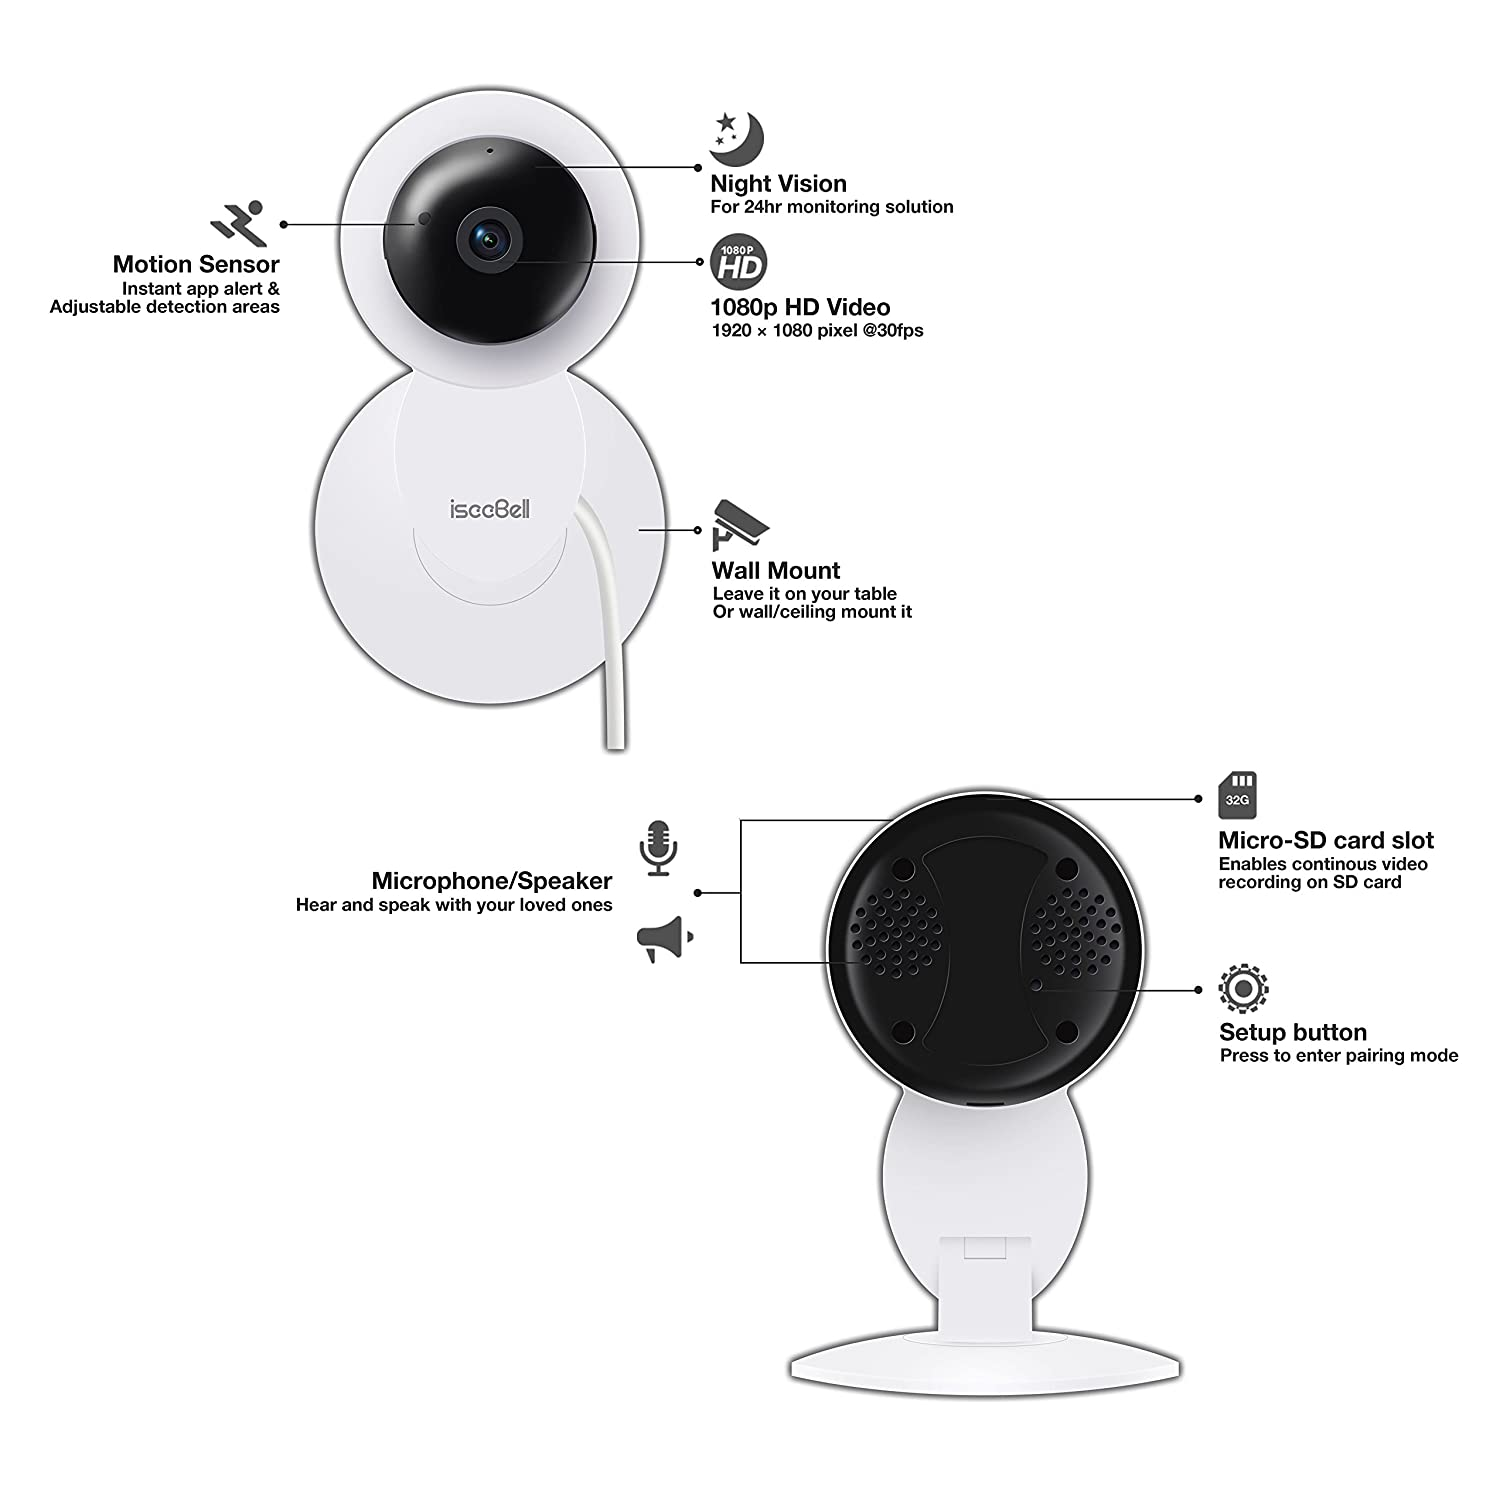 24//7 Cloud Recording SmartApp SD Card Slot for Home//Office//Baby//Nanny//Pet Monitor White Wi-Fi IP Indoor Security System with Motion Detection Night Vision 2-Way Audio ISEEBELL Home Camera